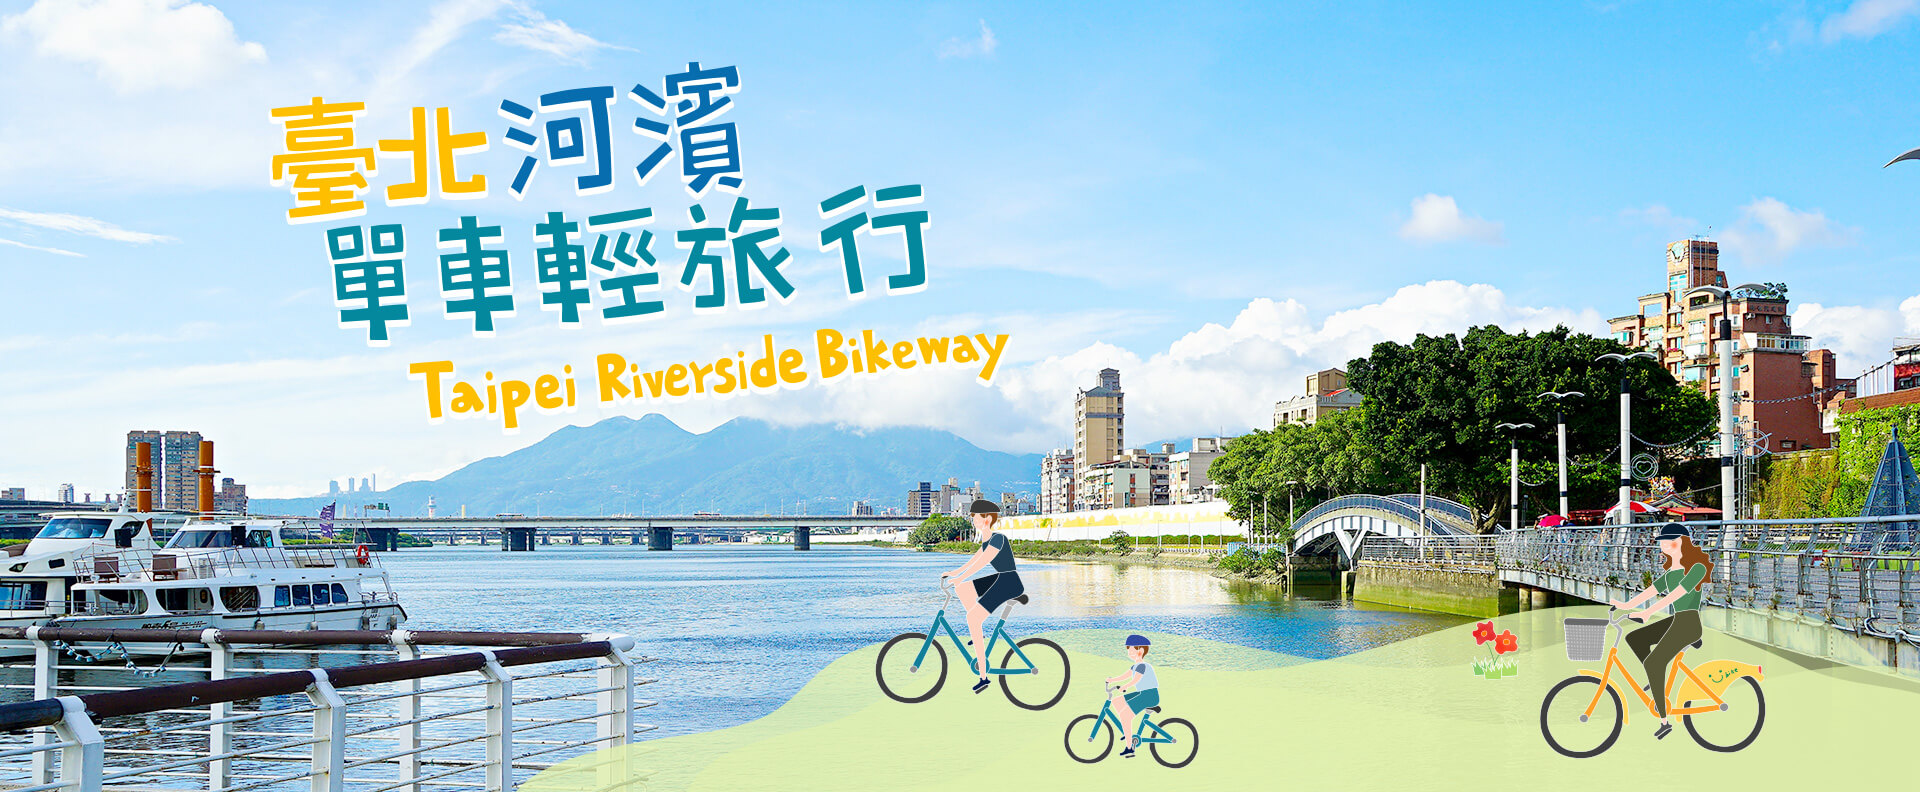 Easy Cycling Tour along Taipei's Riverside Bikeway